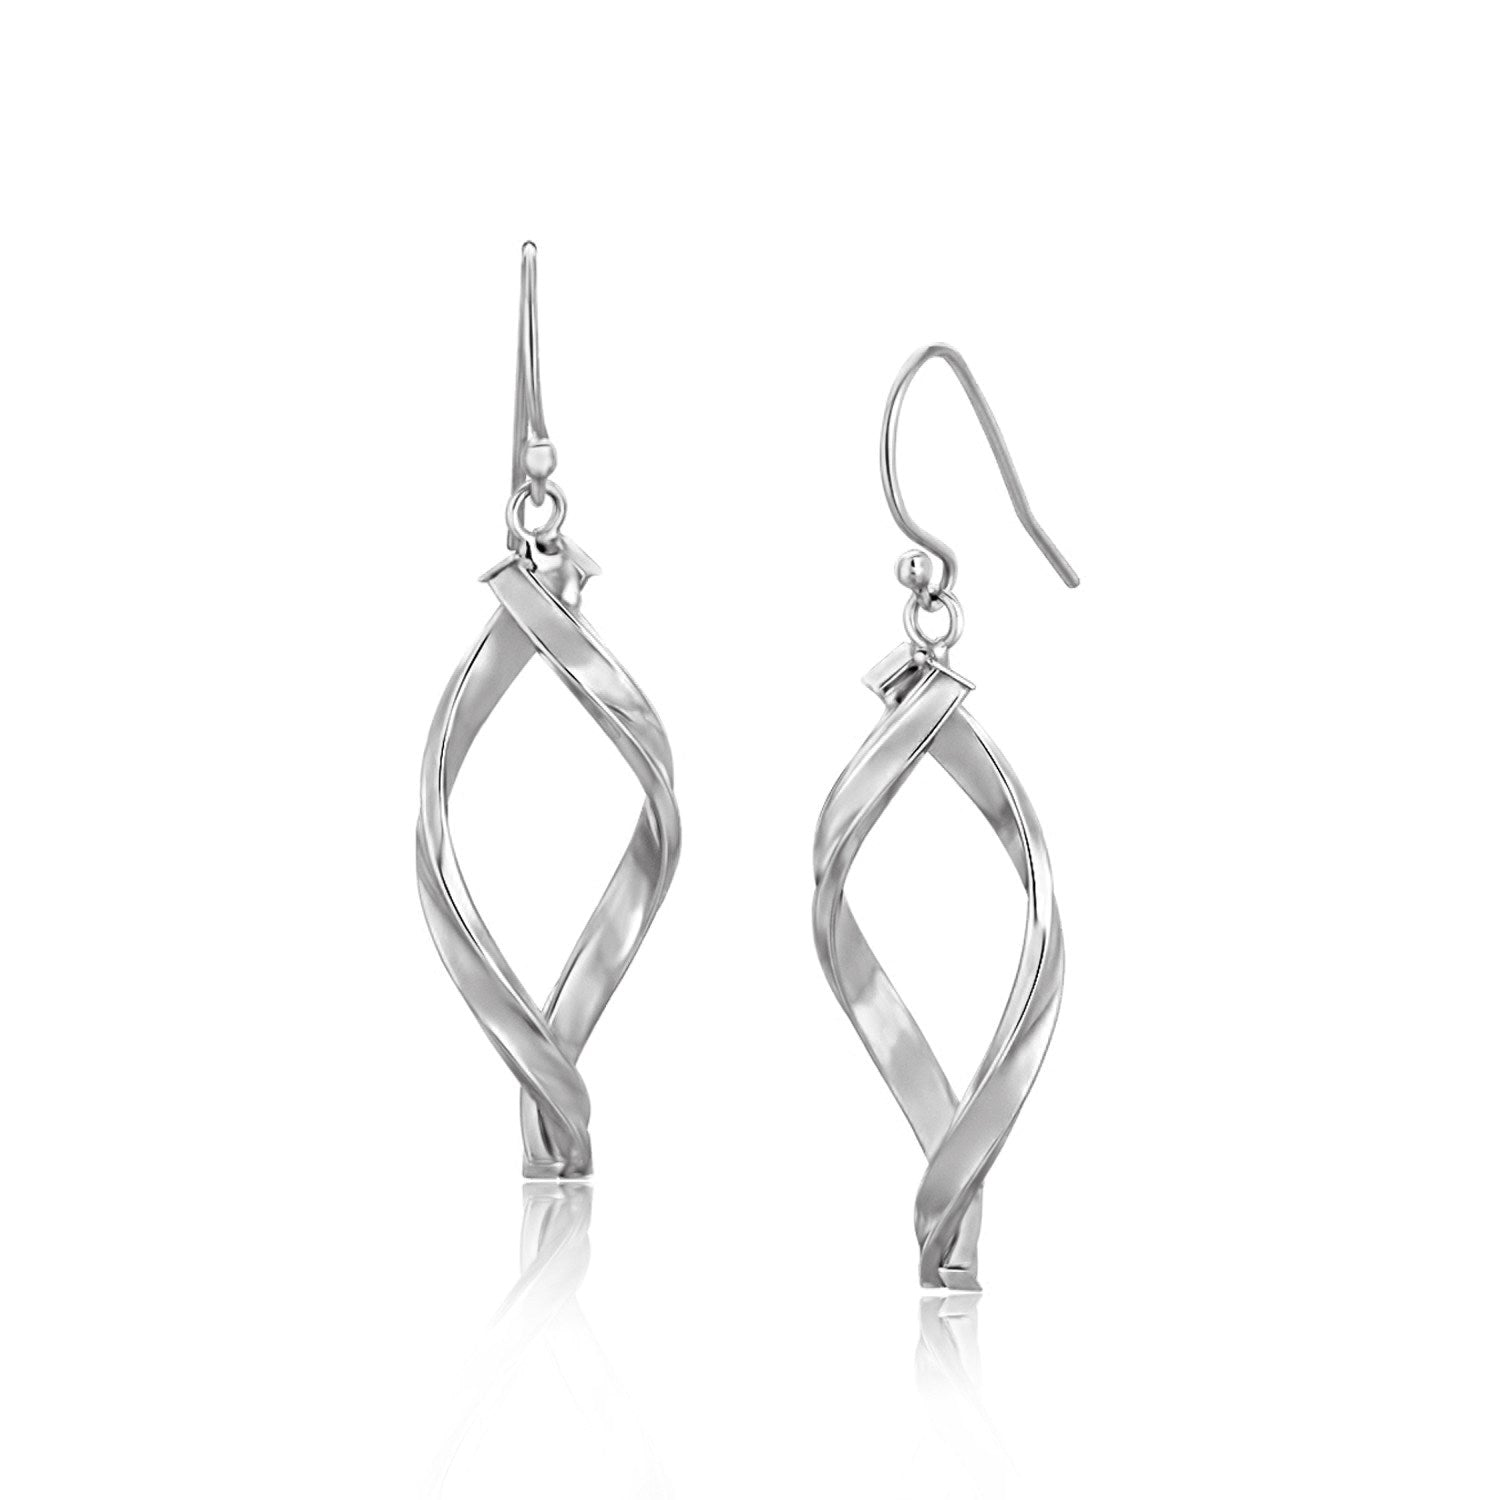 14K White Gold Twisted Freeform Oval Drop Earrings